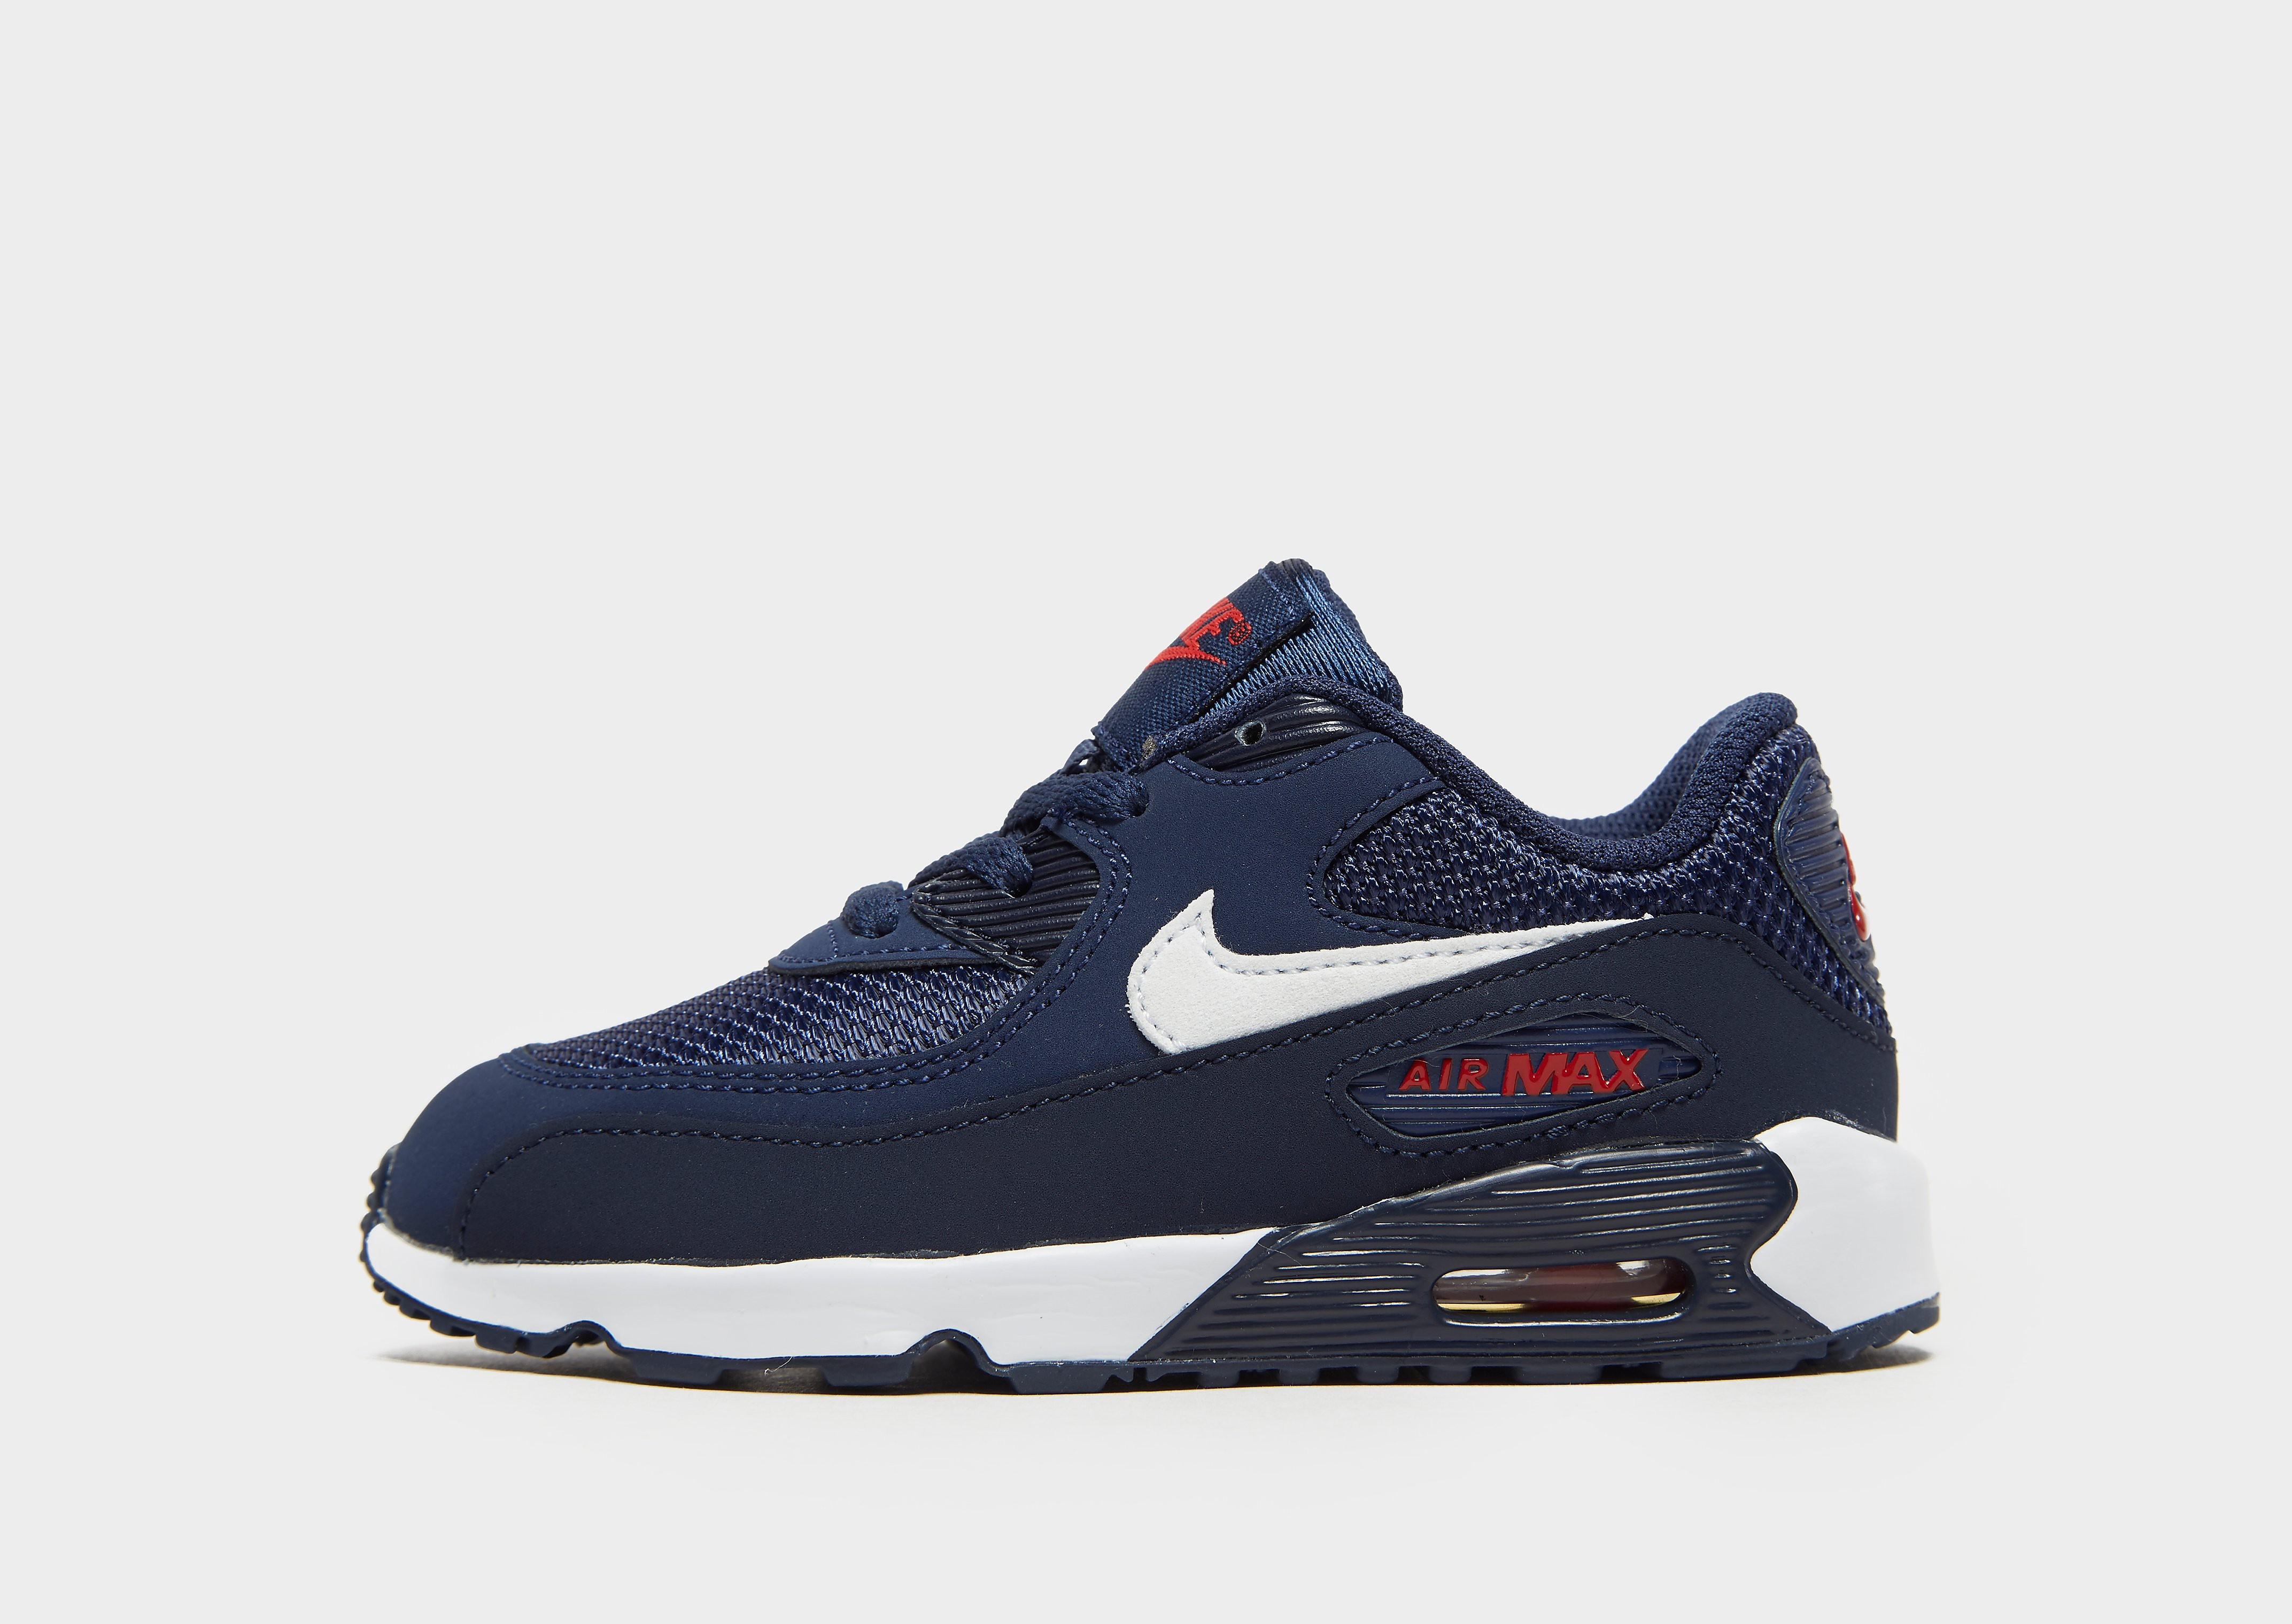 Nike Air Max 90 Baby's - Blauw - Kind